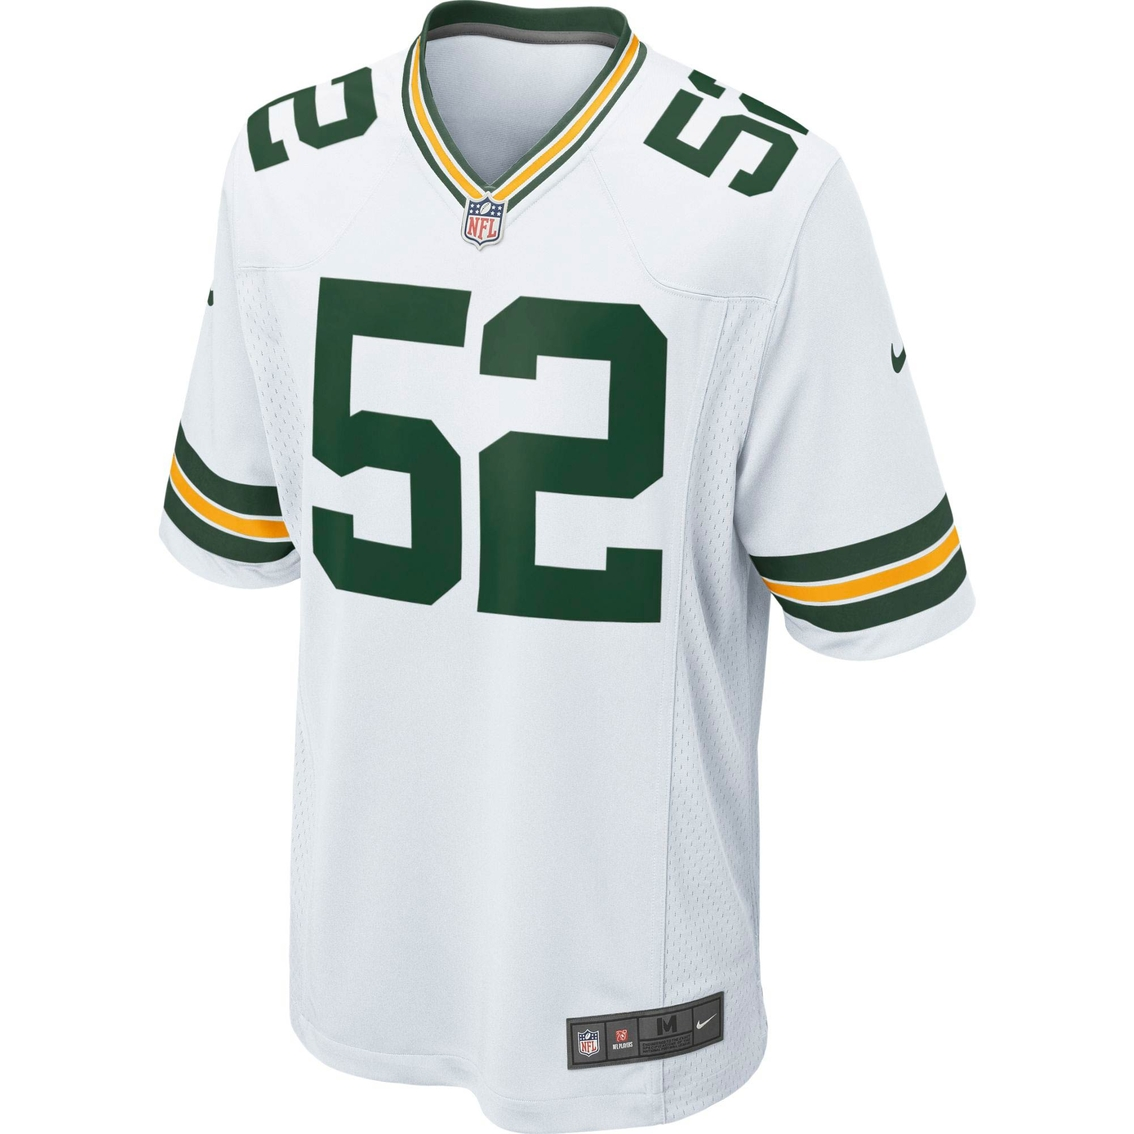 official photos b3de4 c0a58 Nike Nfl Green Bay Packers Men's Clay Matthews White Game ...